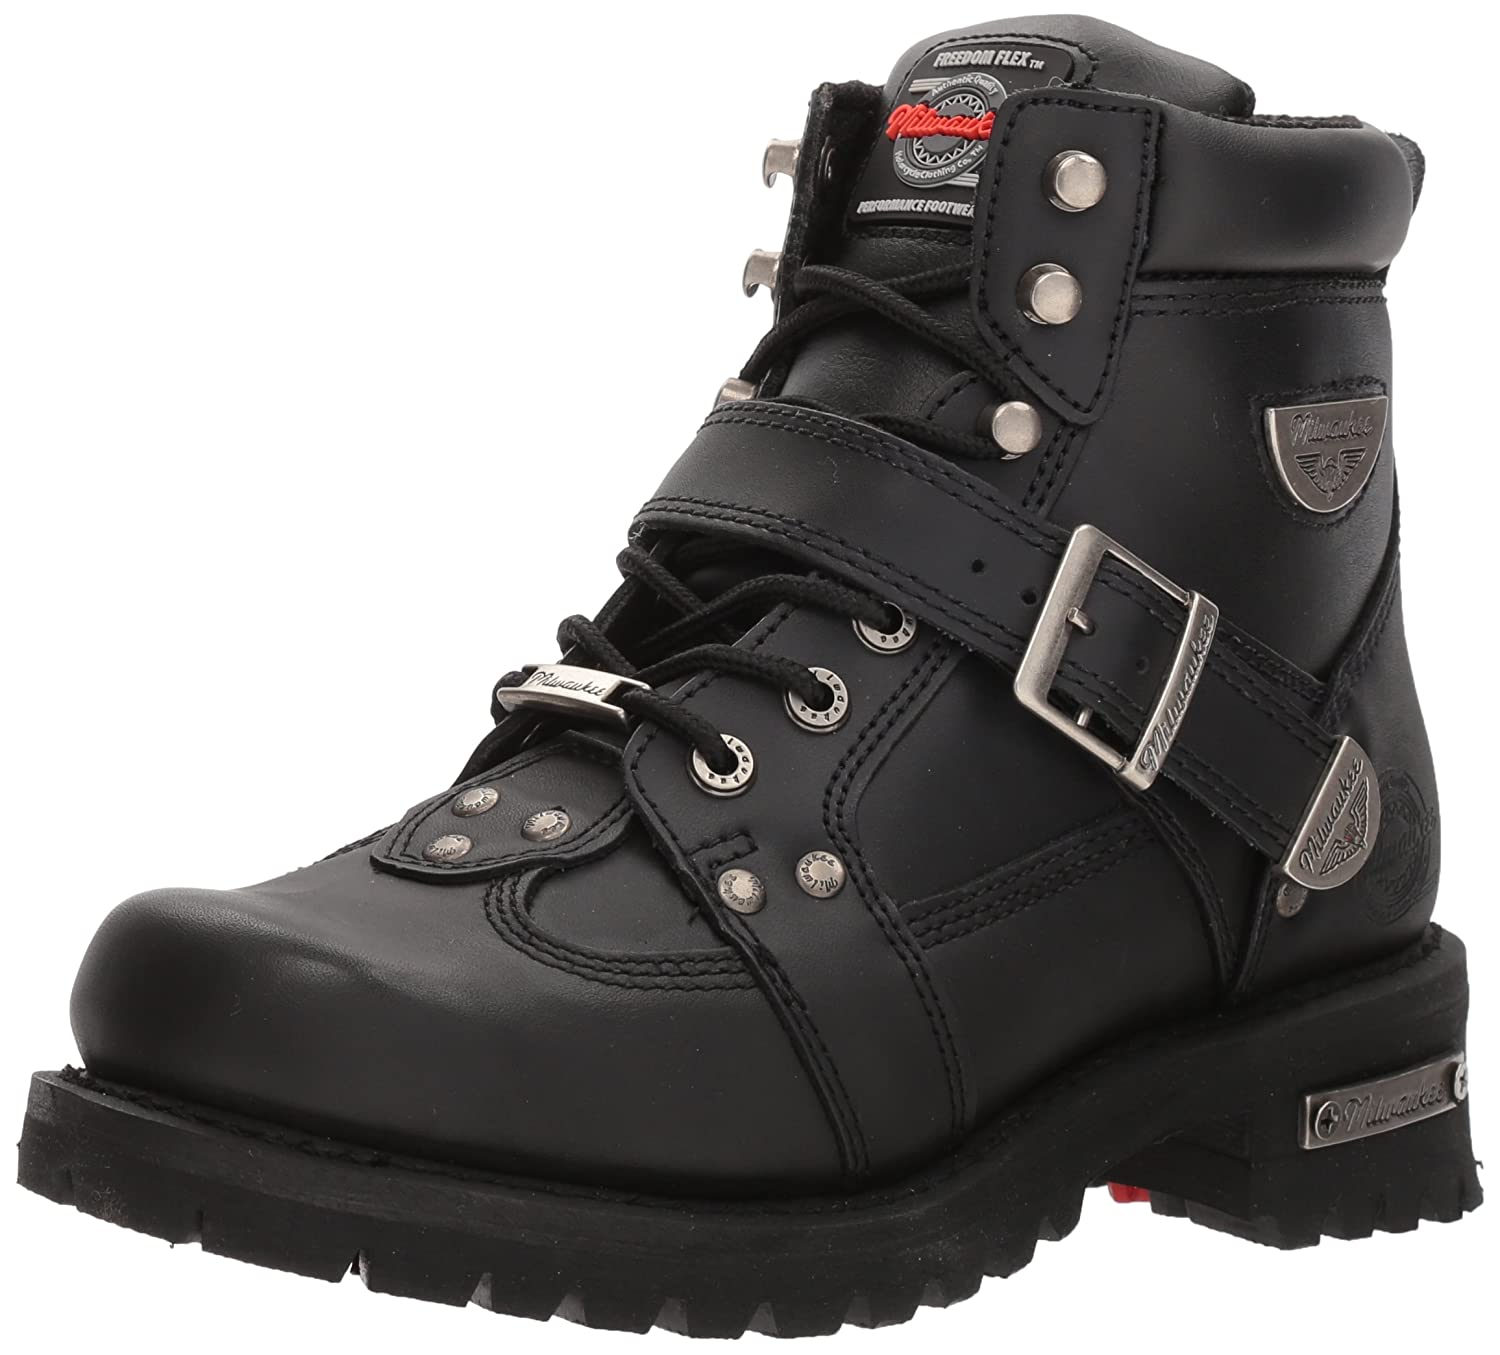 790c4c4a7cb Milwaukee Motorcycle Clothing Company Road Captain Leather Women's  Motorcycle Boots (Black, Size 9C)